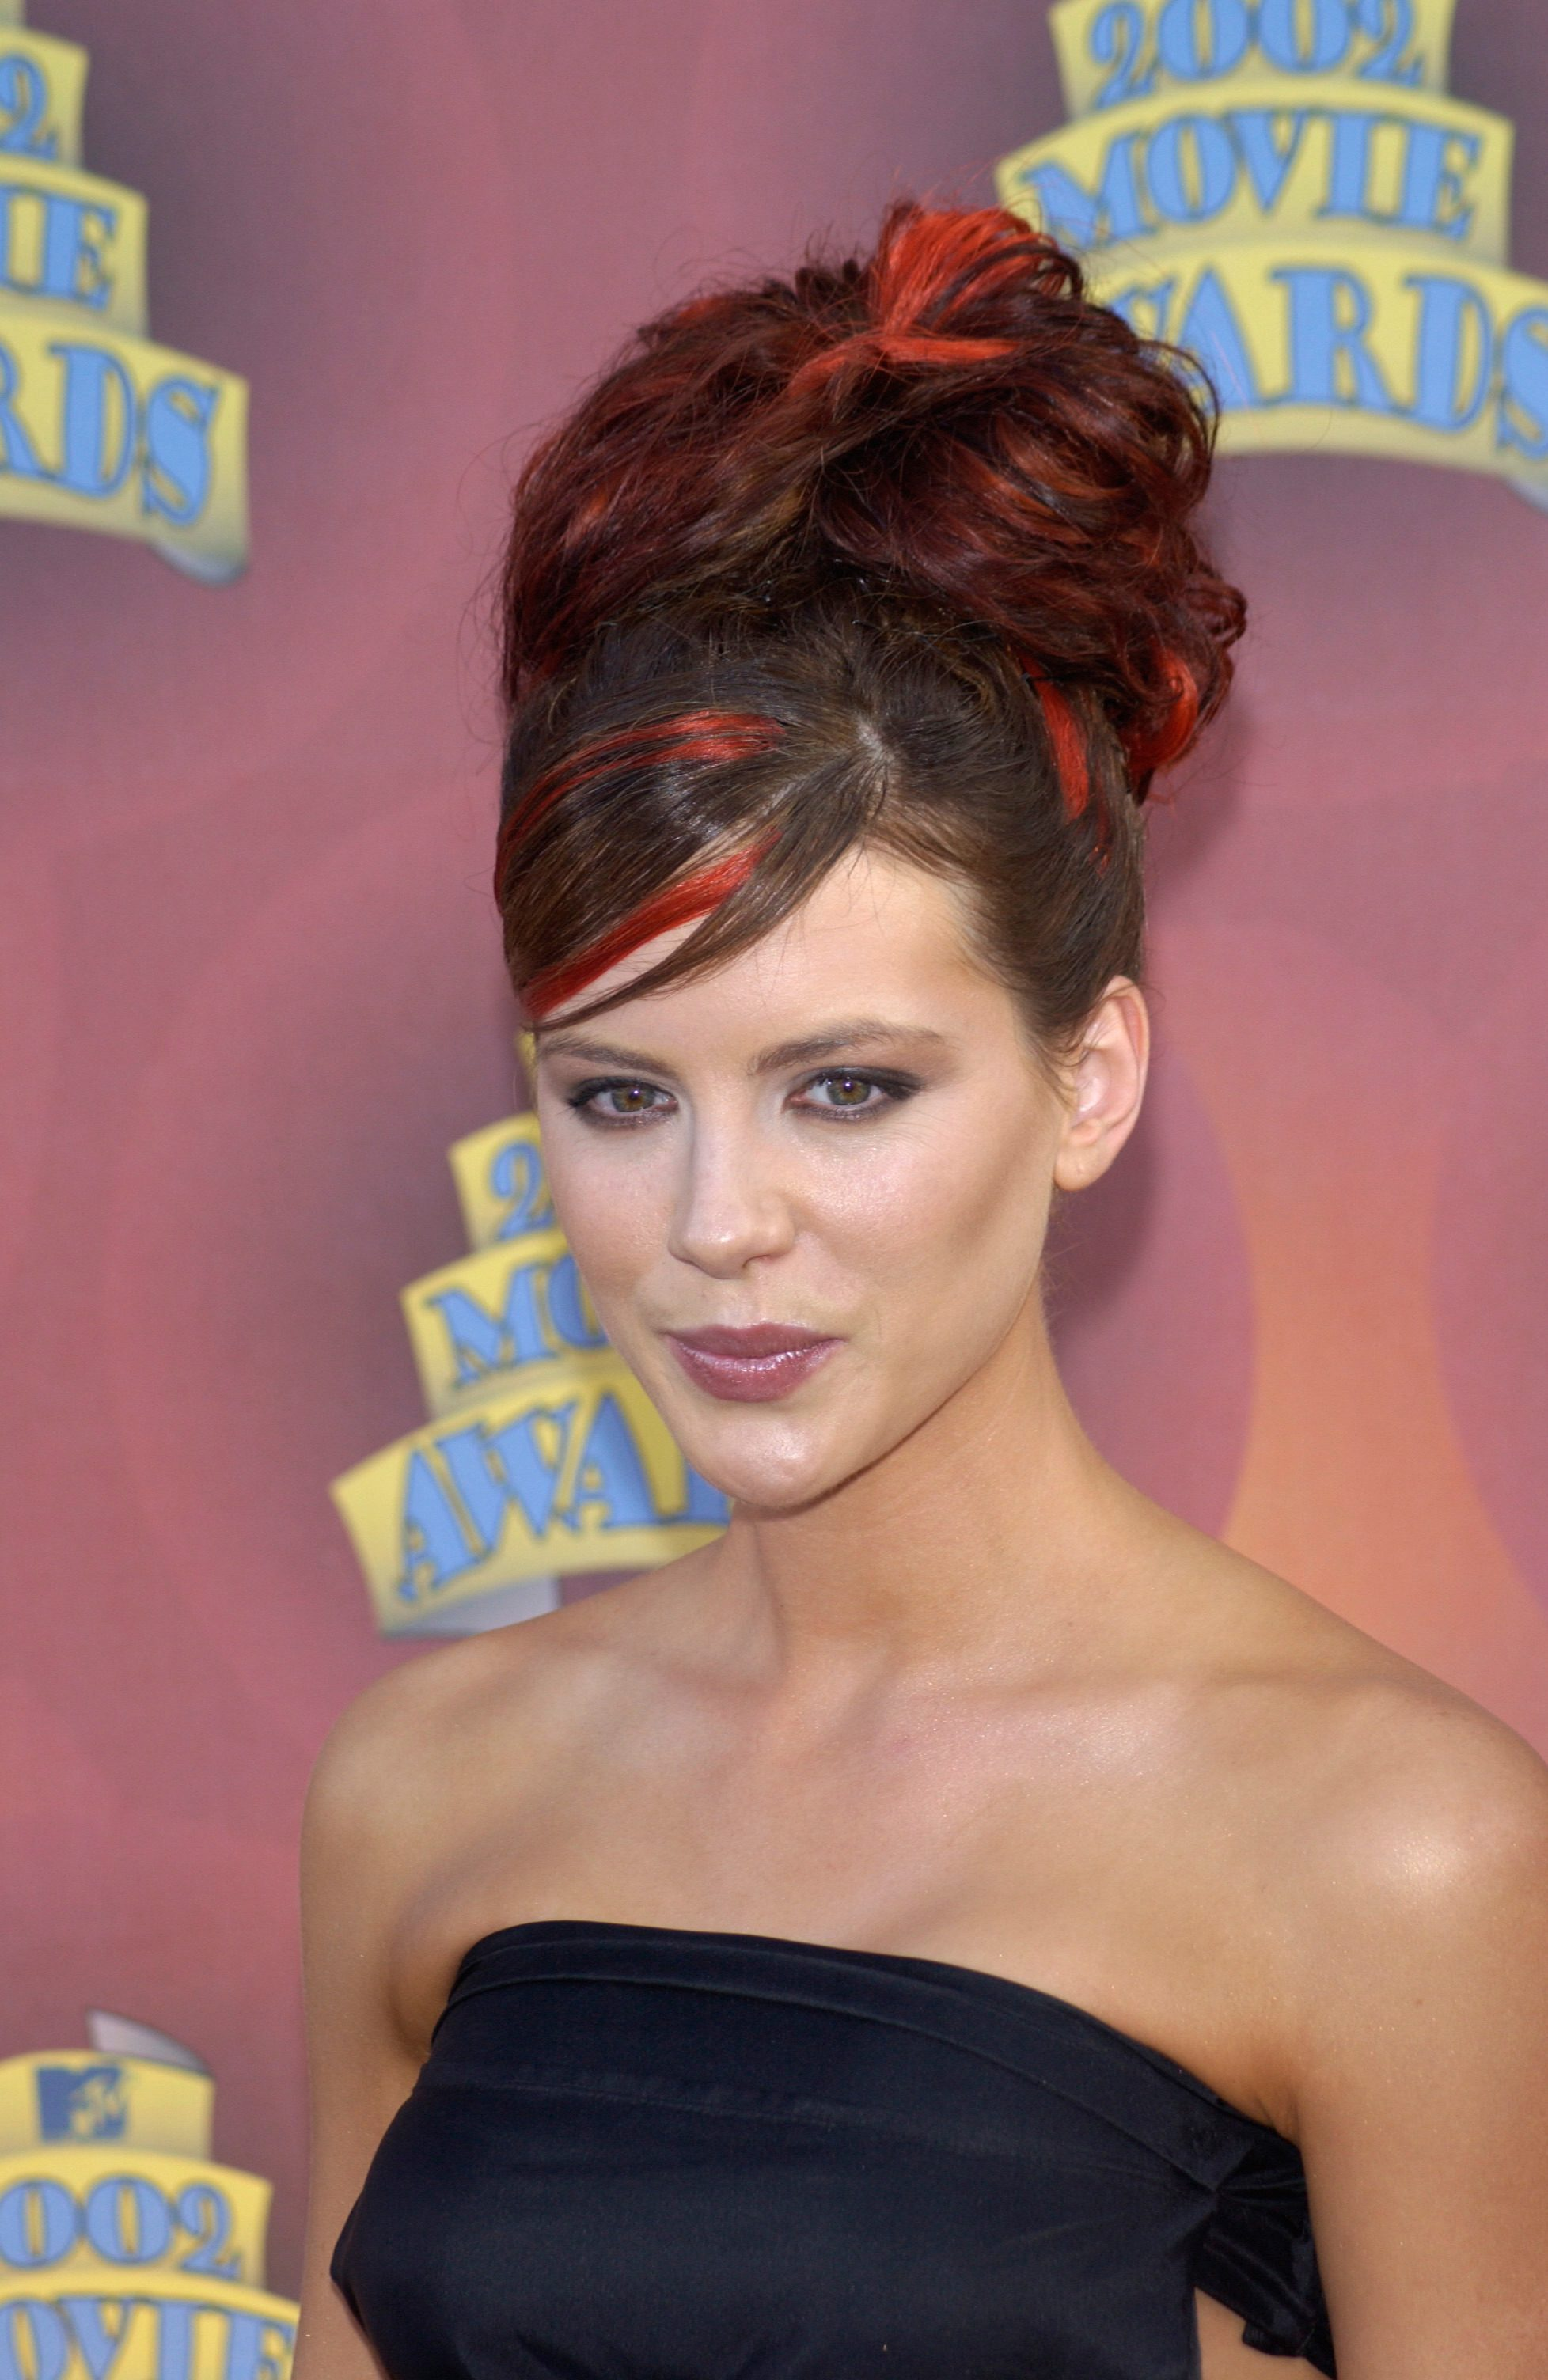 Kate Beckinsale's Chocolate Brown Hair with Bright Red Highlights